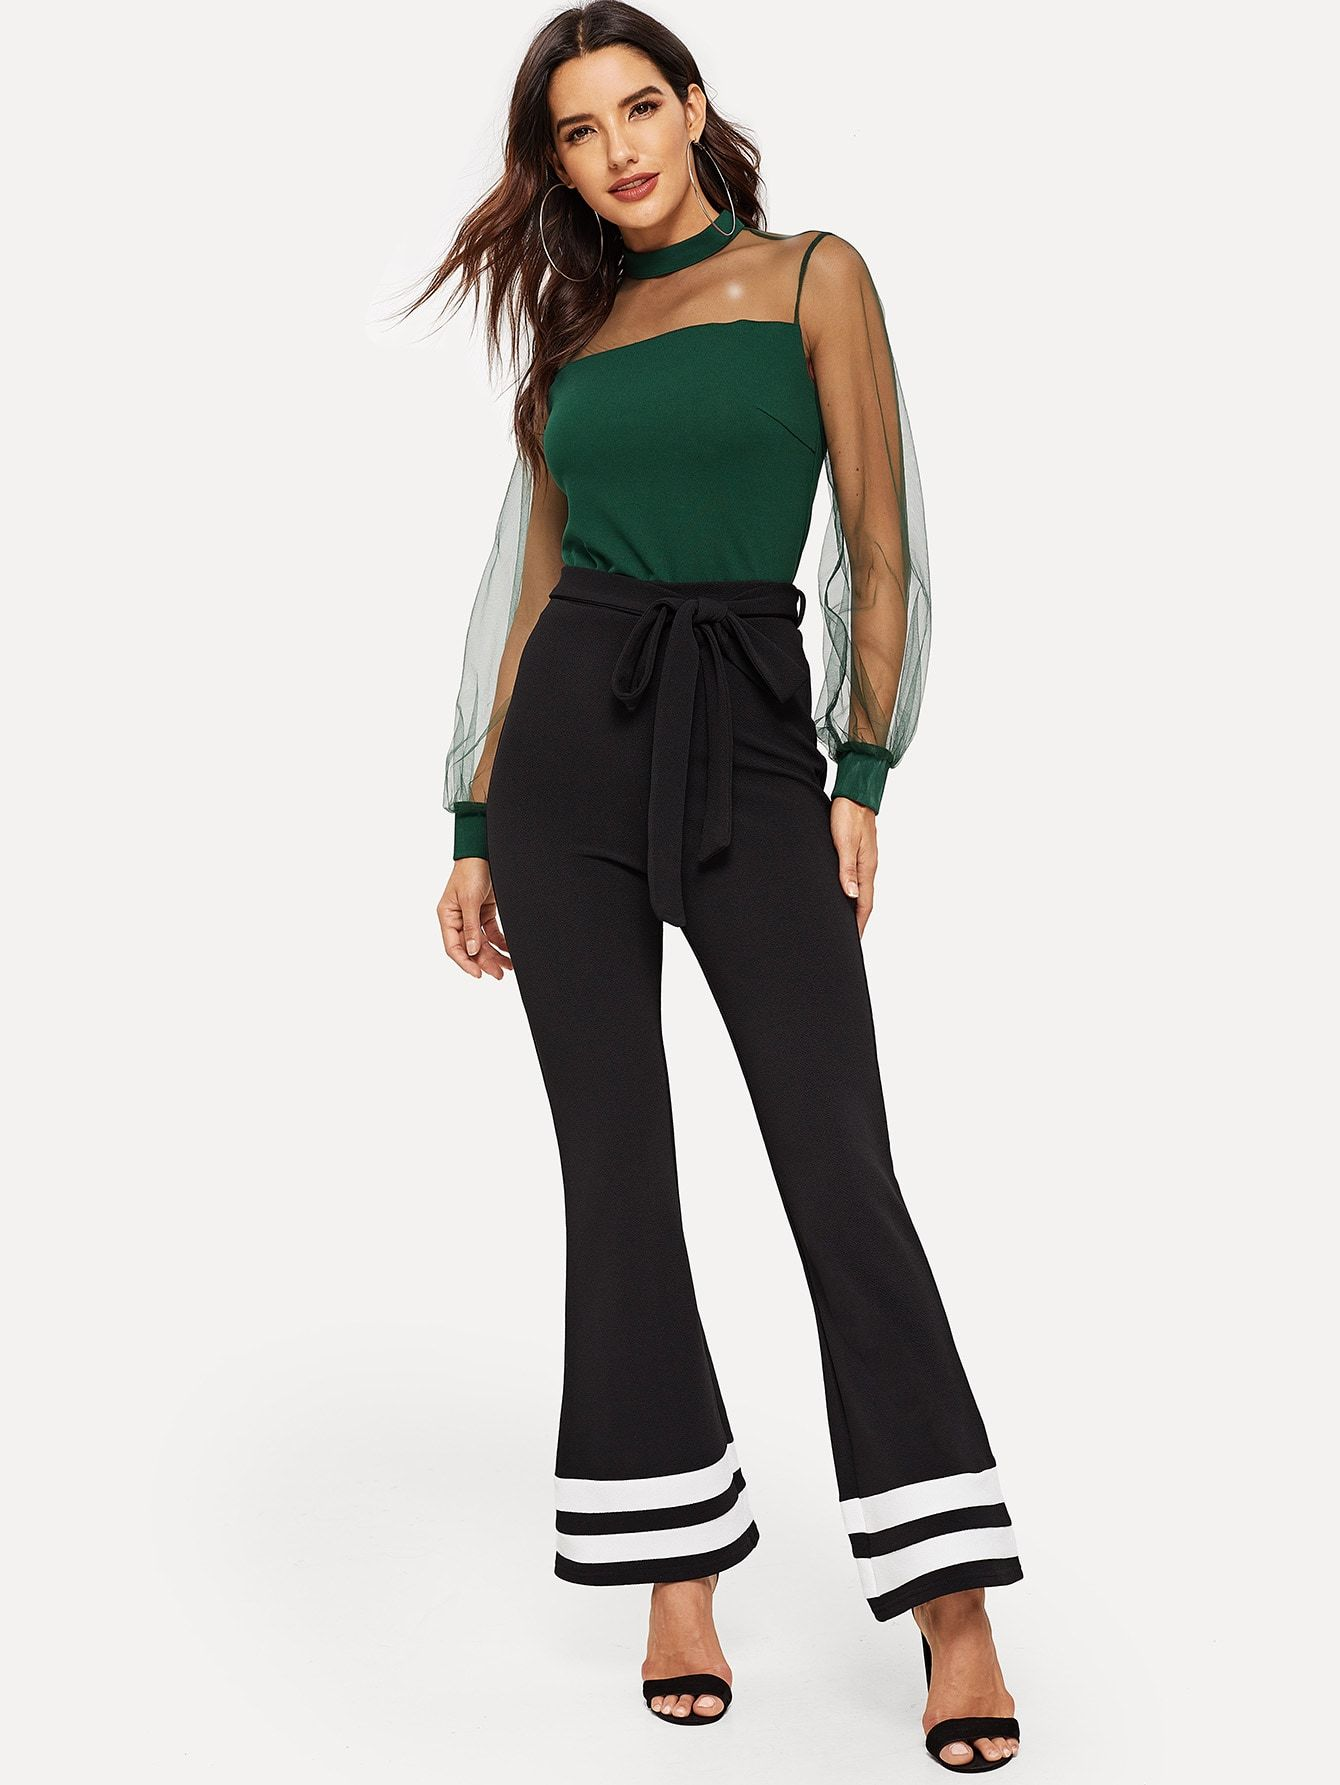 048a45afb3fc Casual and Elegant Belted and Colorblock Patchwork Flare Leg Skinny  Drawstring Waist High Waist Black Long Length Striped Flared Hem Pants With  Belt with ...